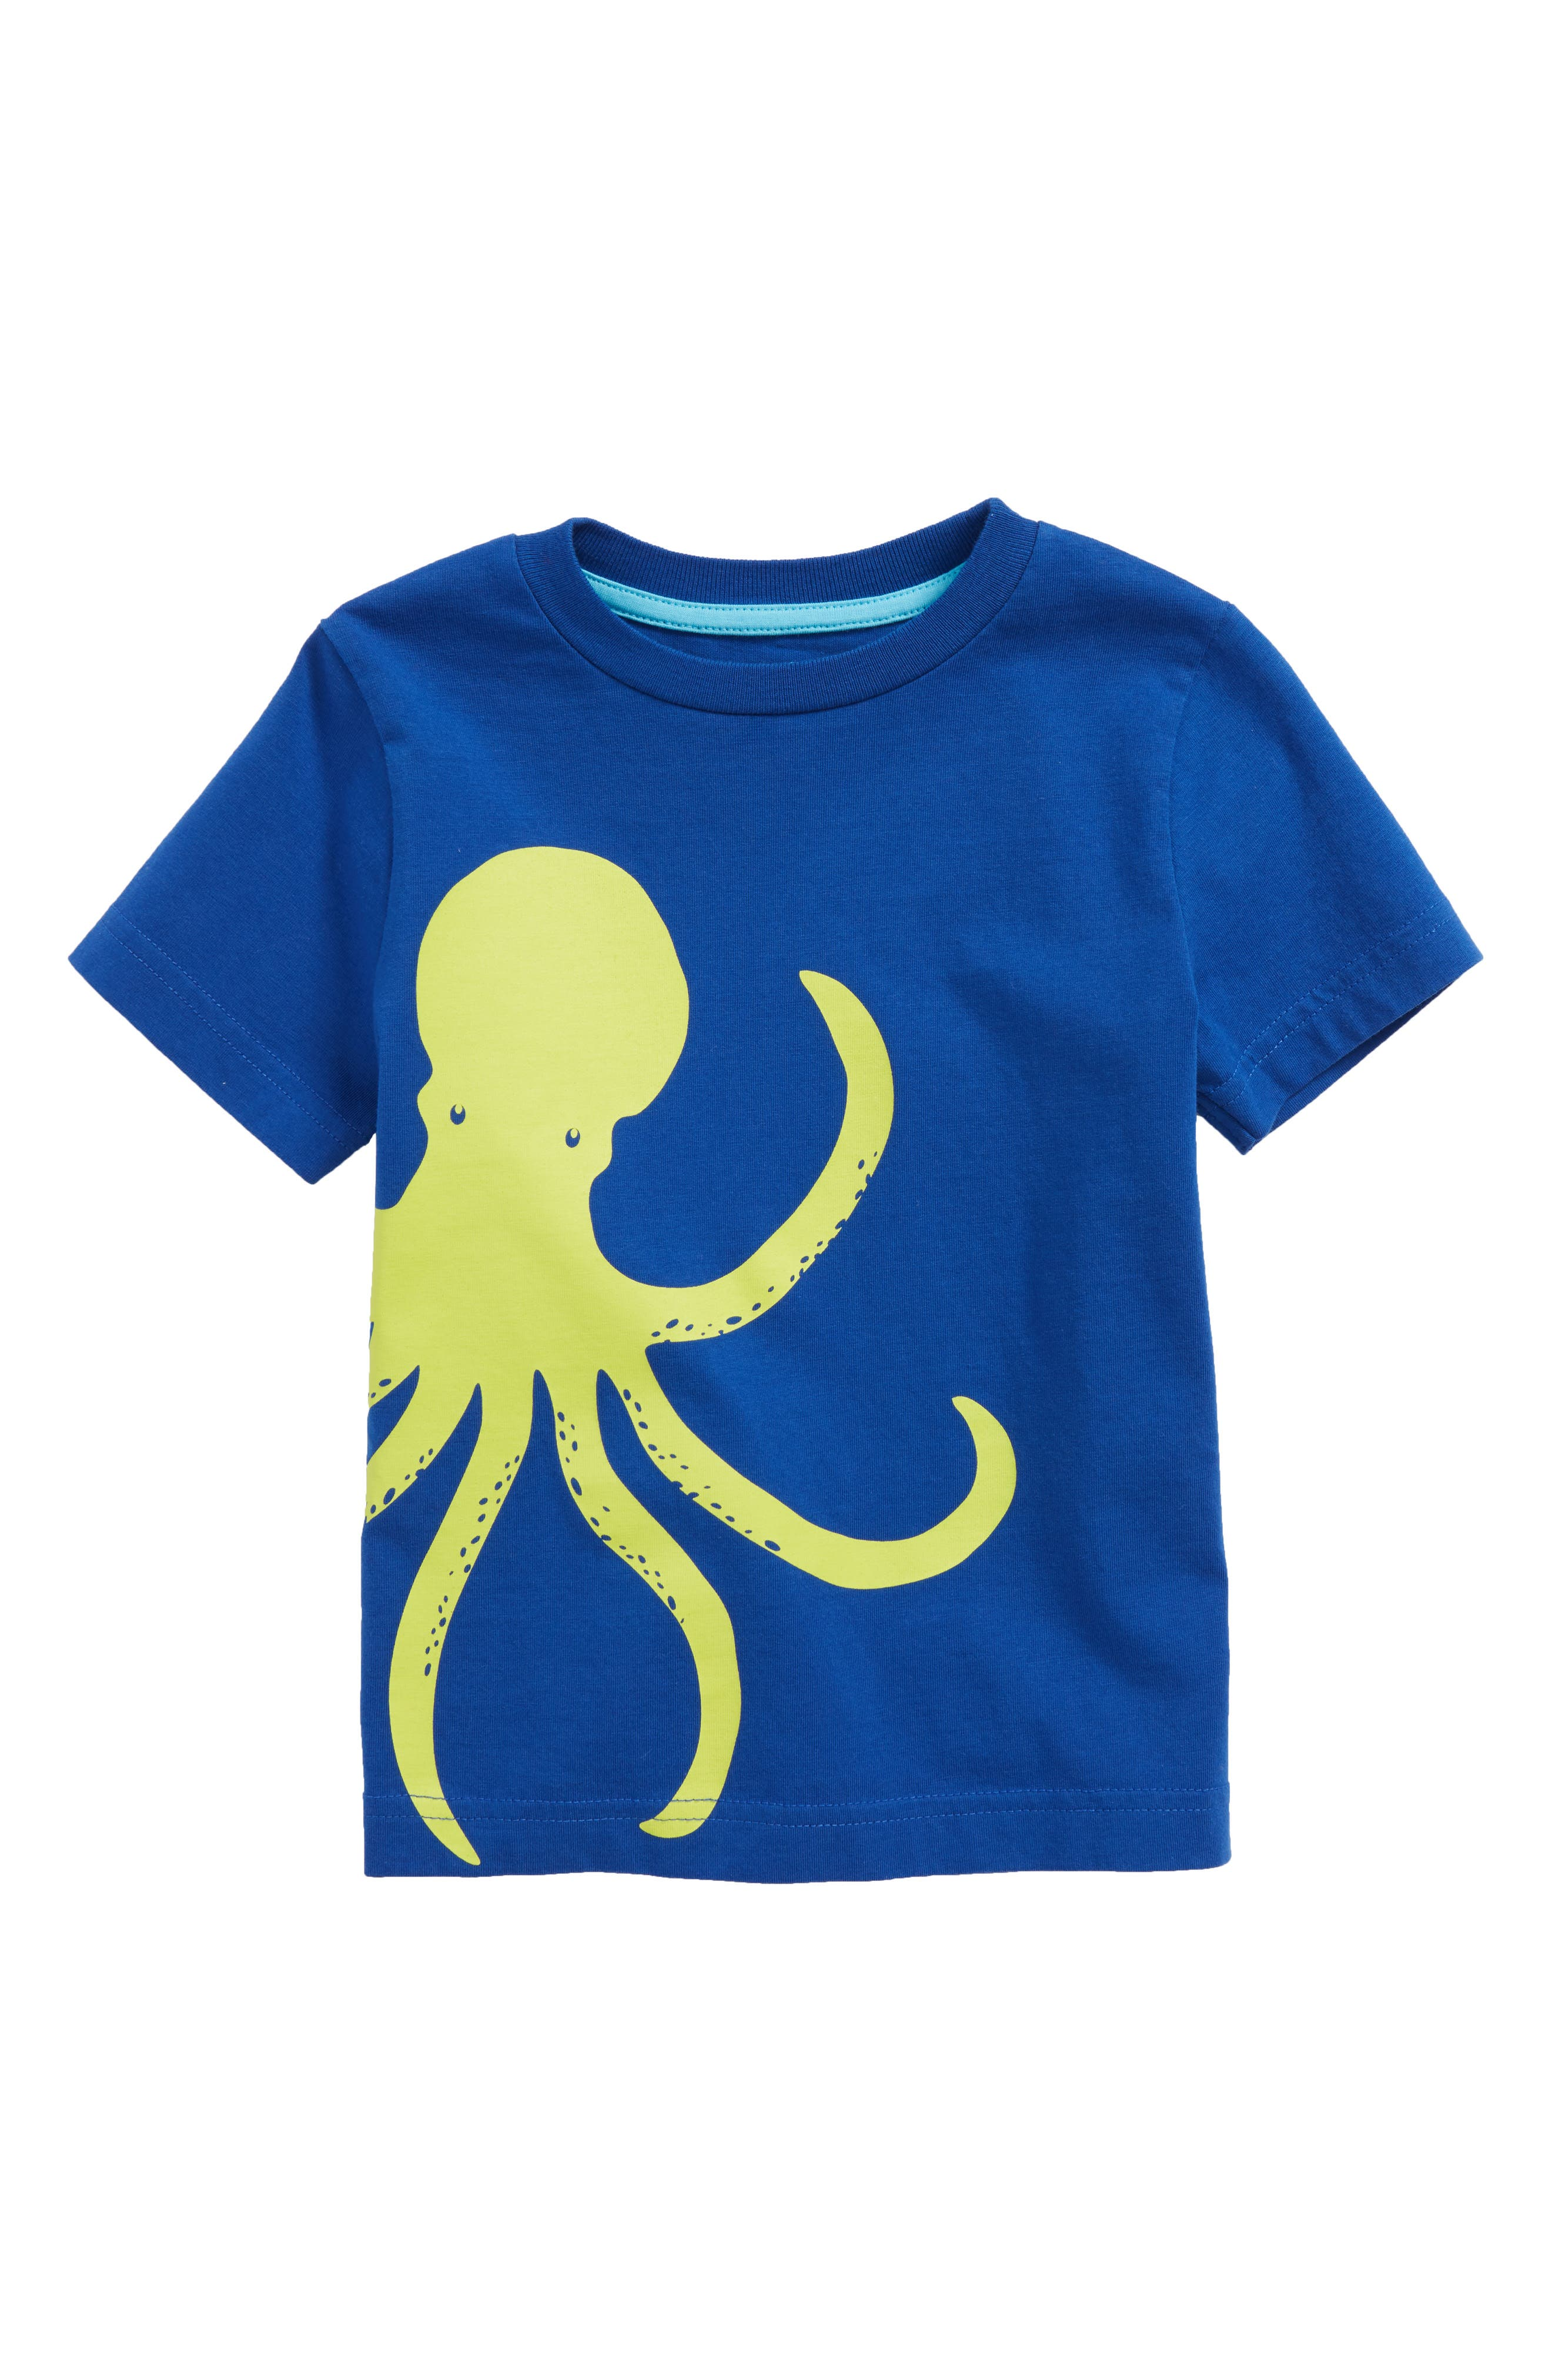 Wraparound Octopus T-Shirt,                             Main thumbnail 1, color,                             404